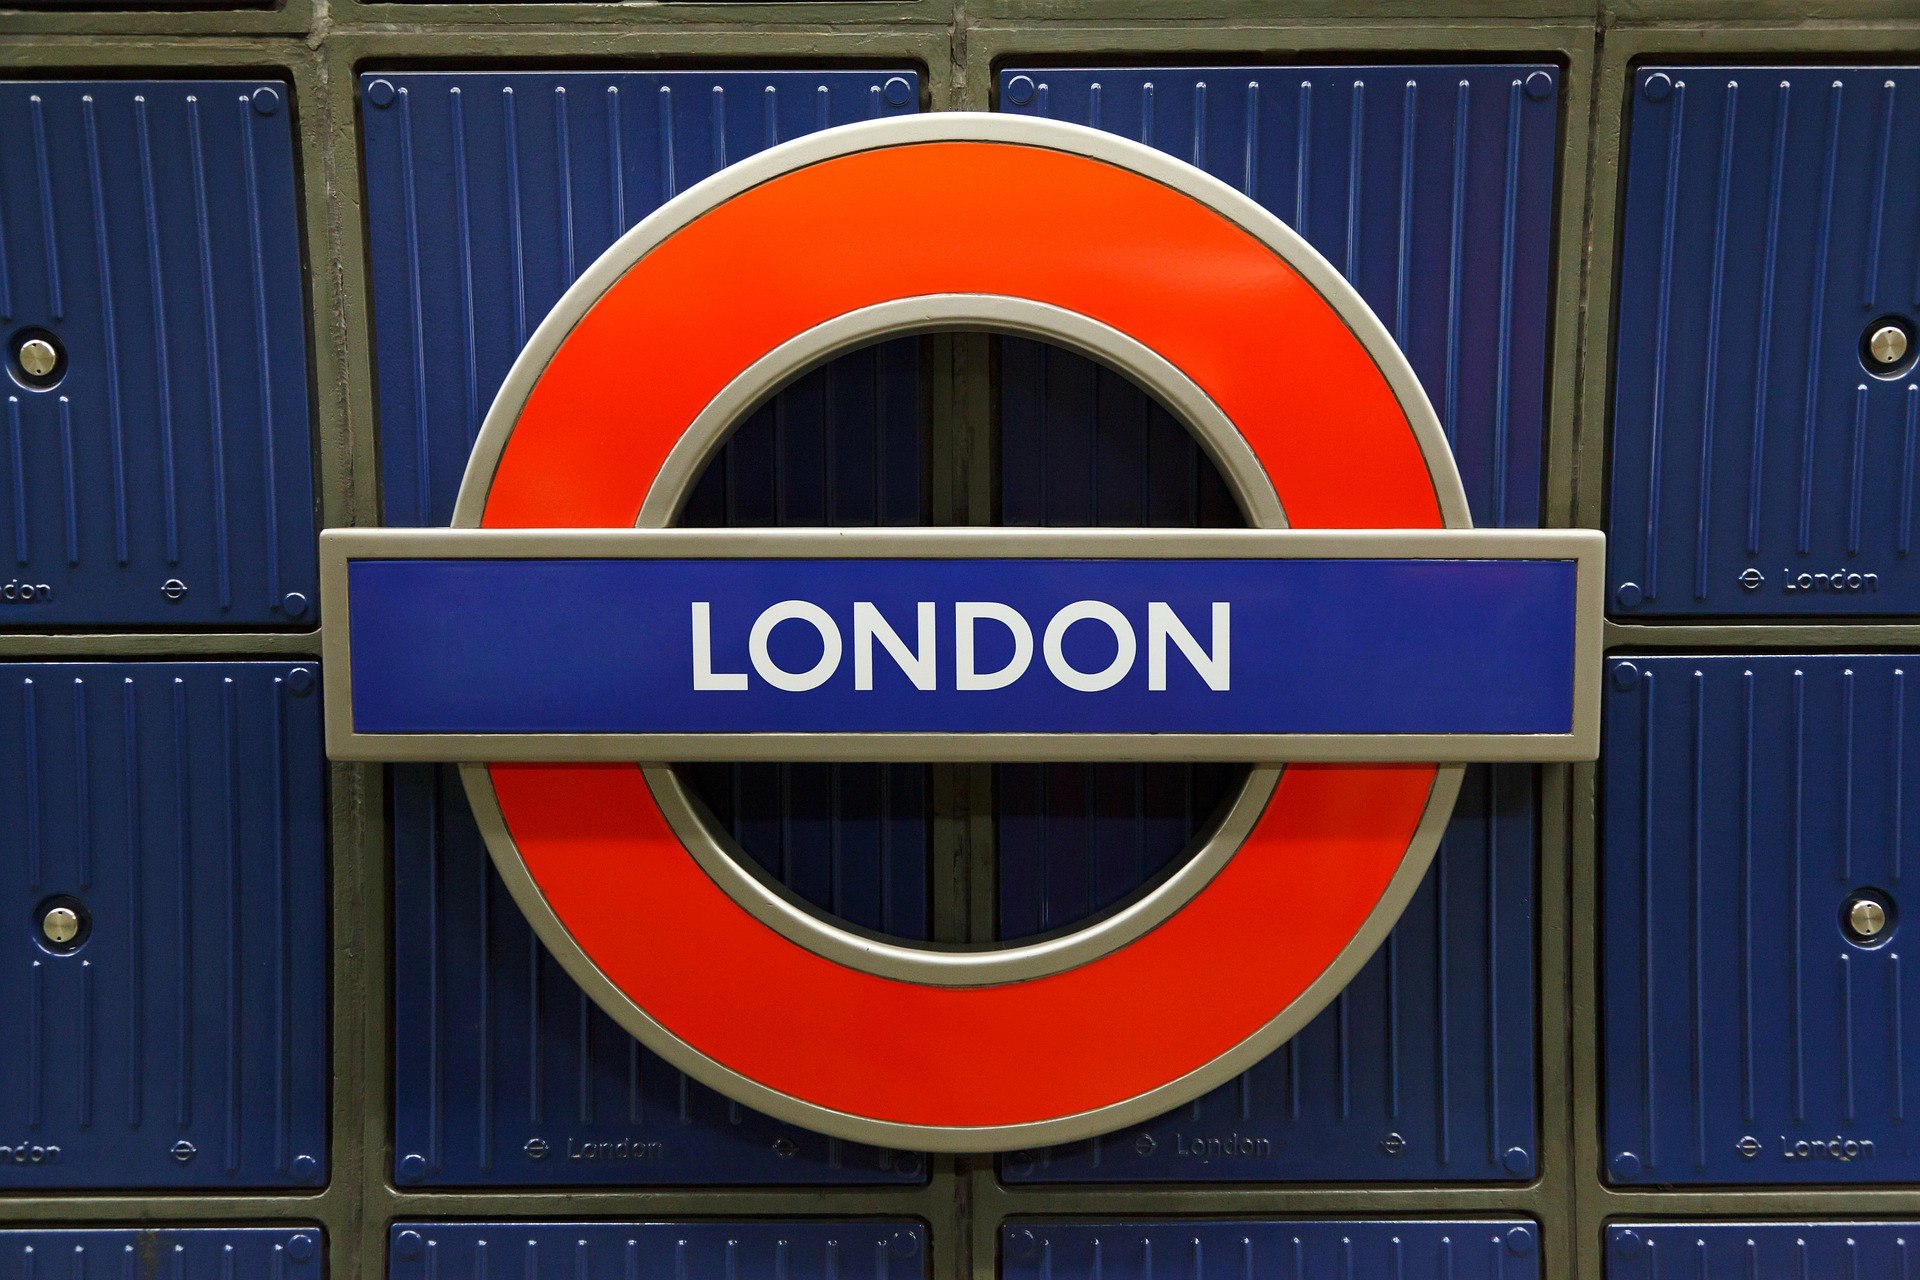 Top 8 Interesting Facts You Should Know About London